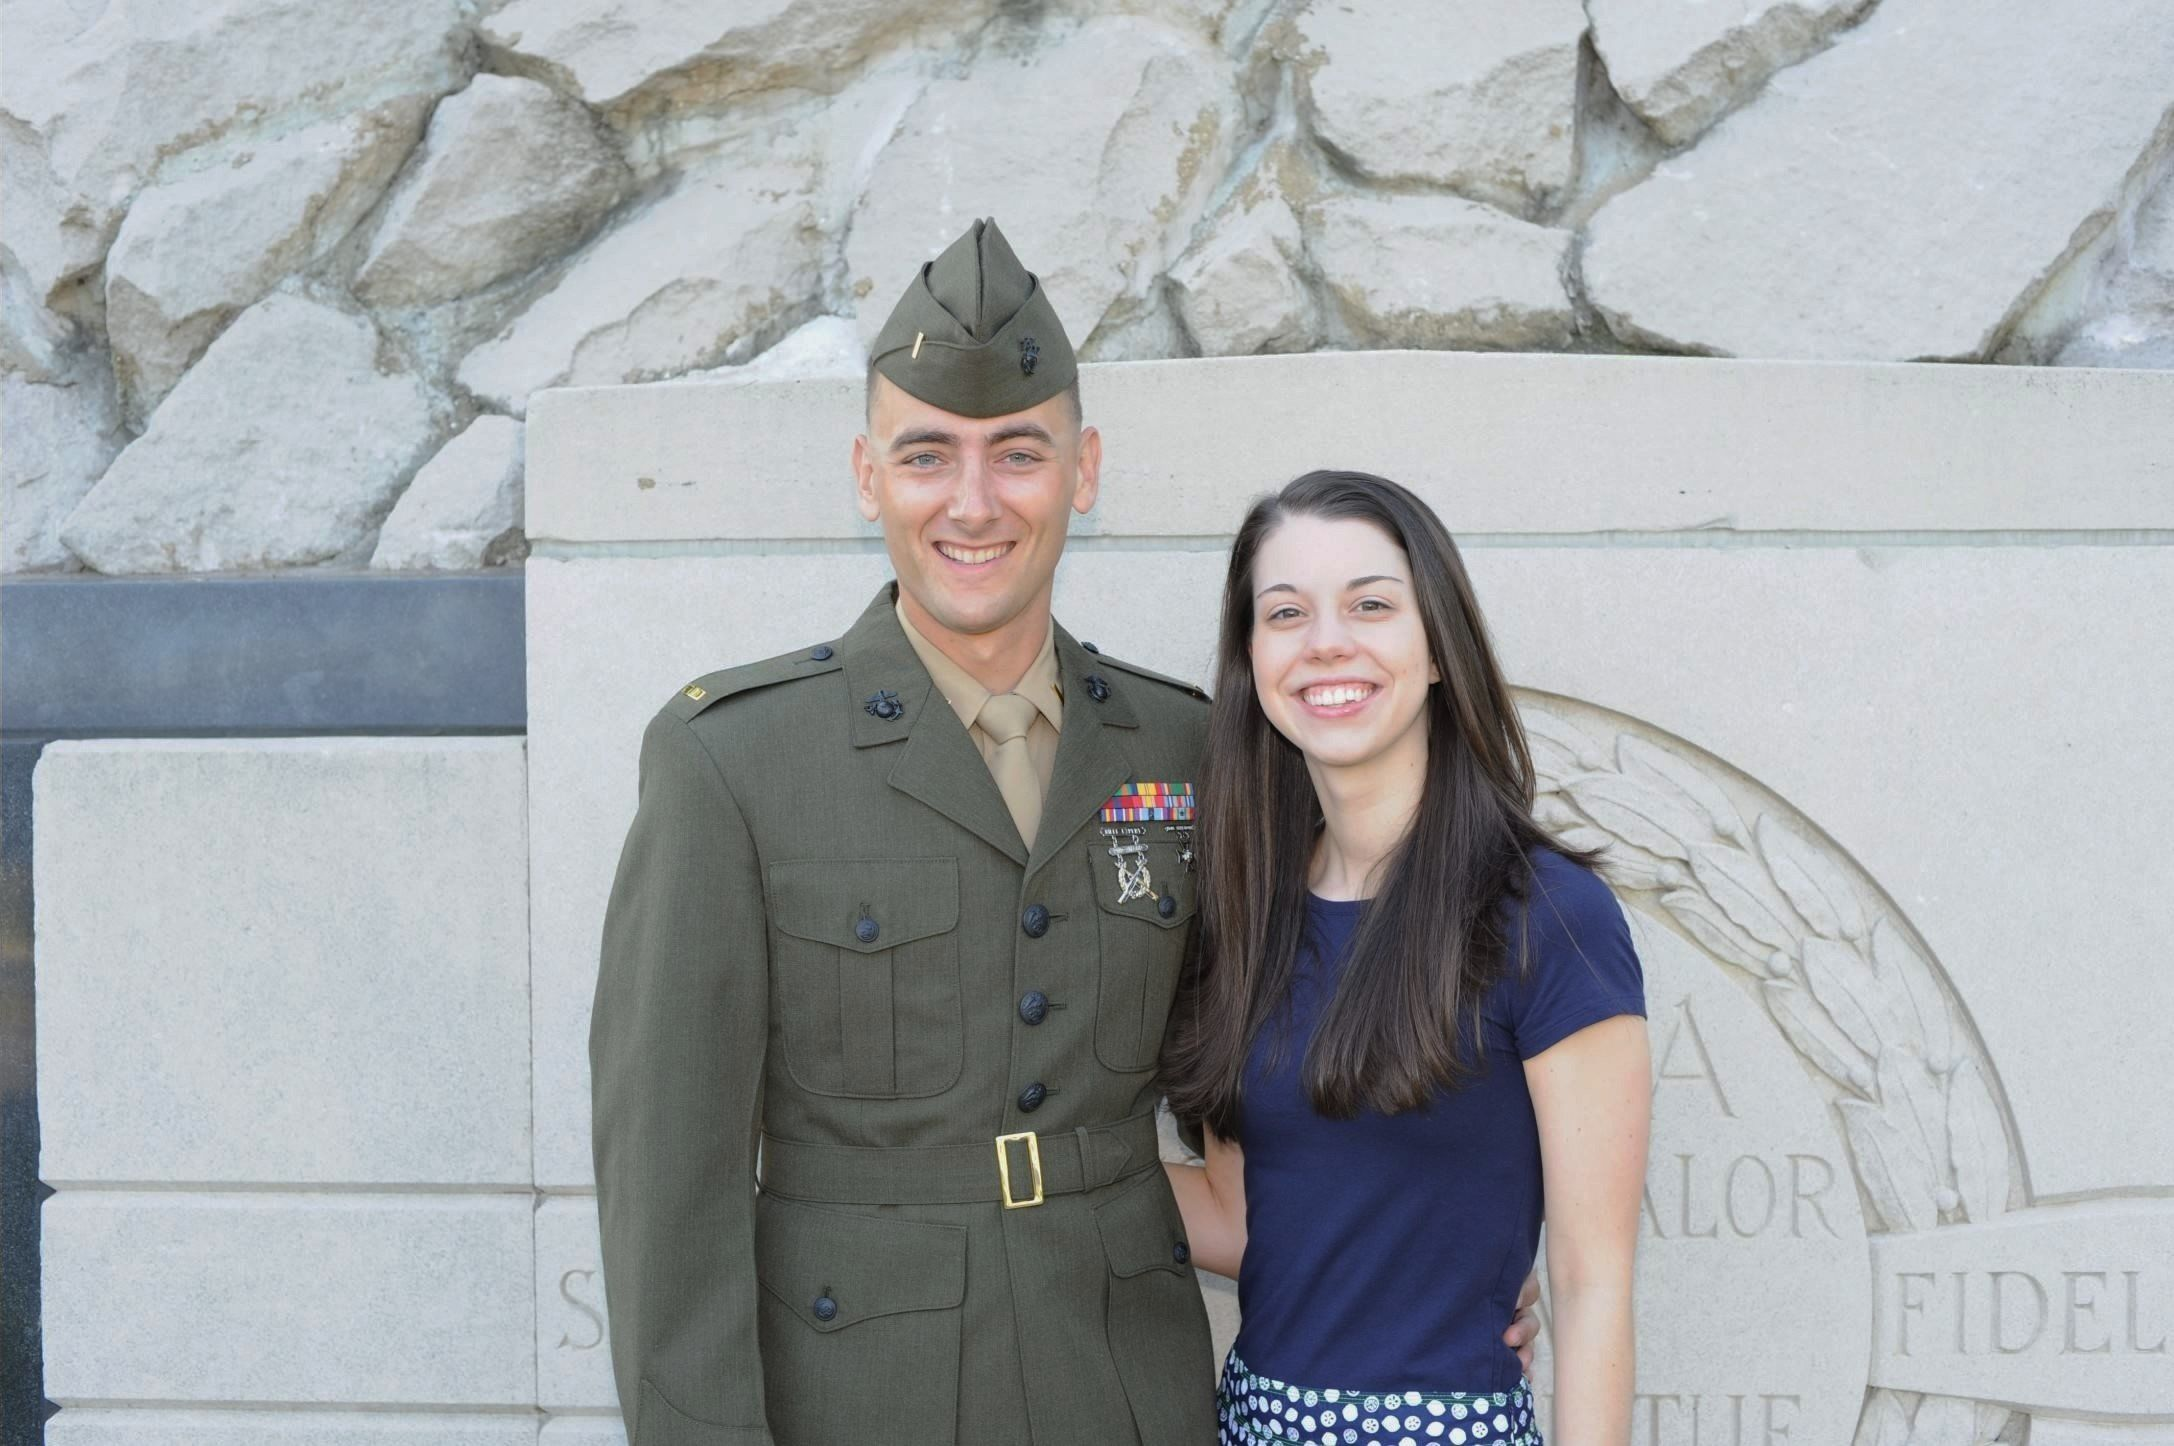 A Marine second lieutenant stands with a woman in front of a war memorial.